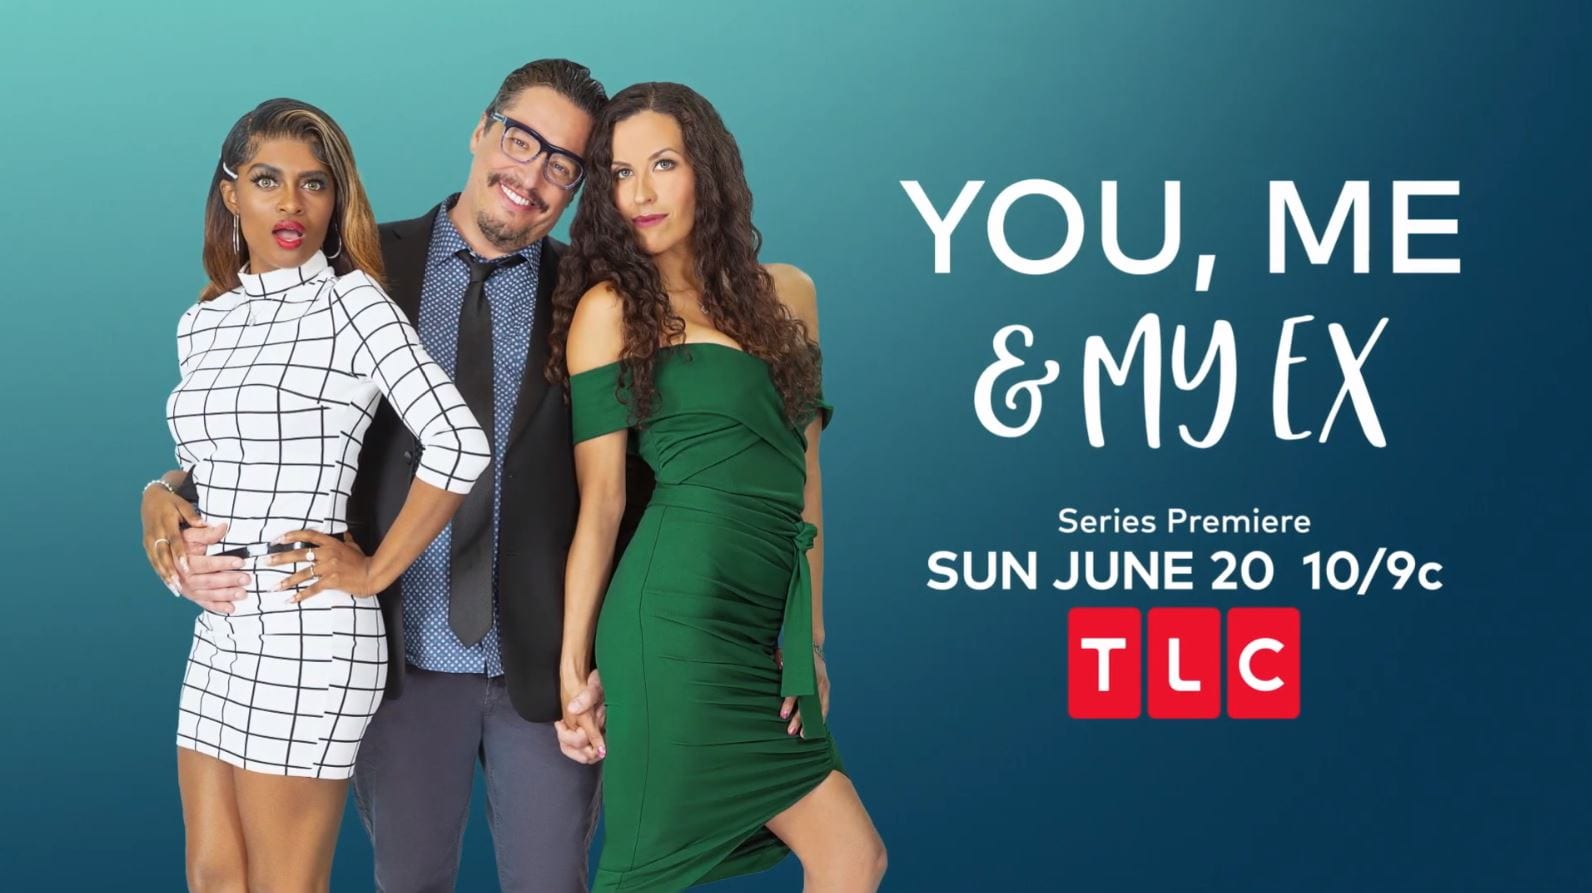 You, Me & My Ex Season 1 Release Date: All About The New TLC Show